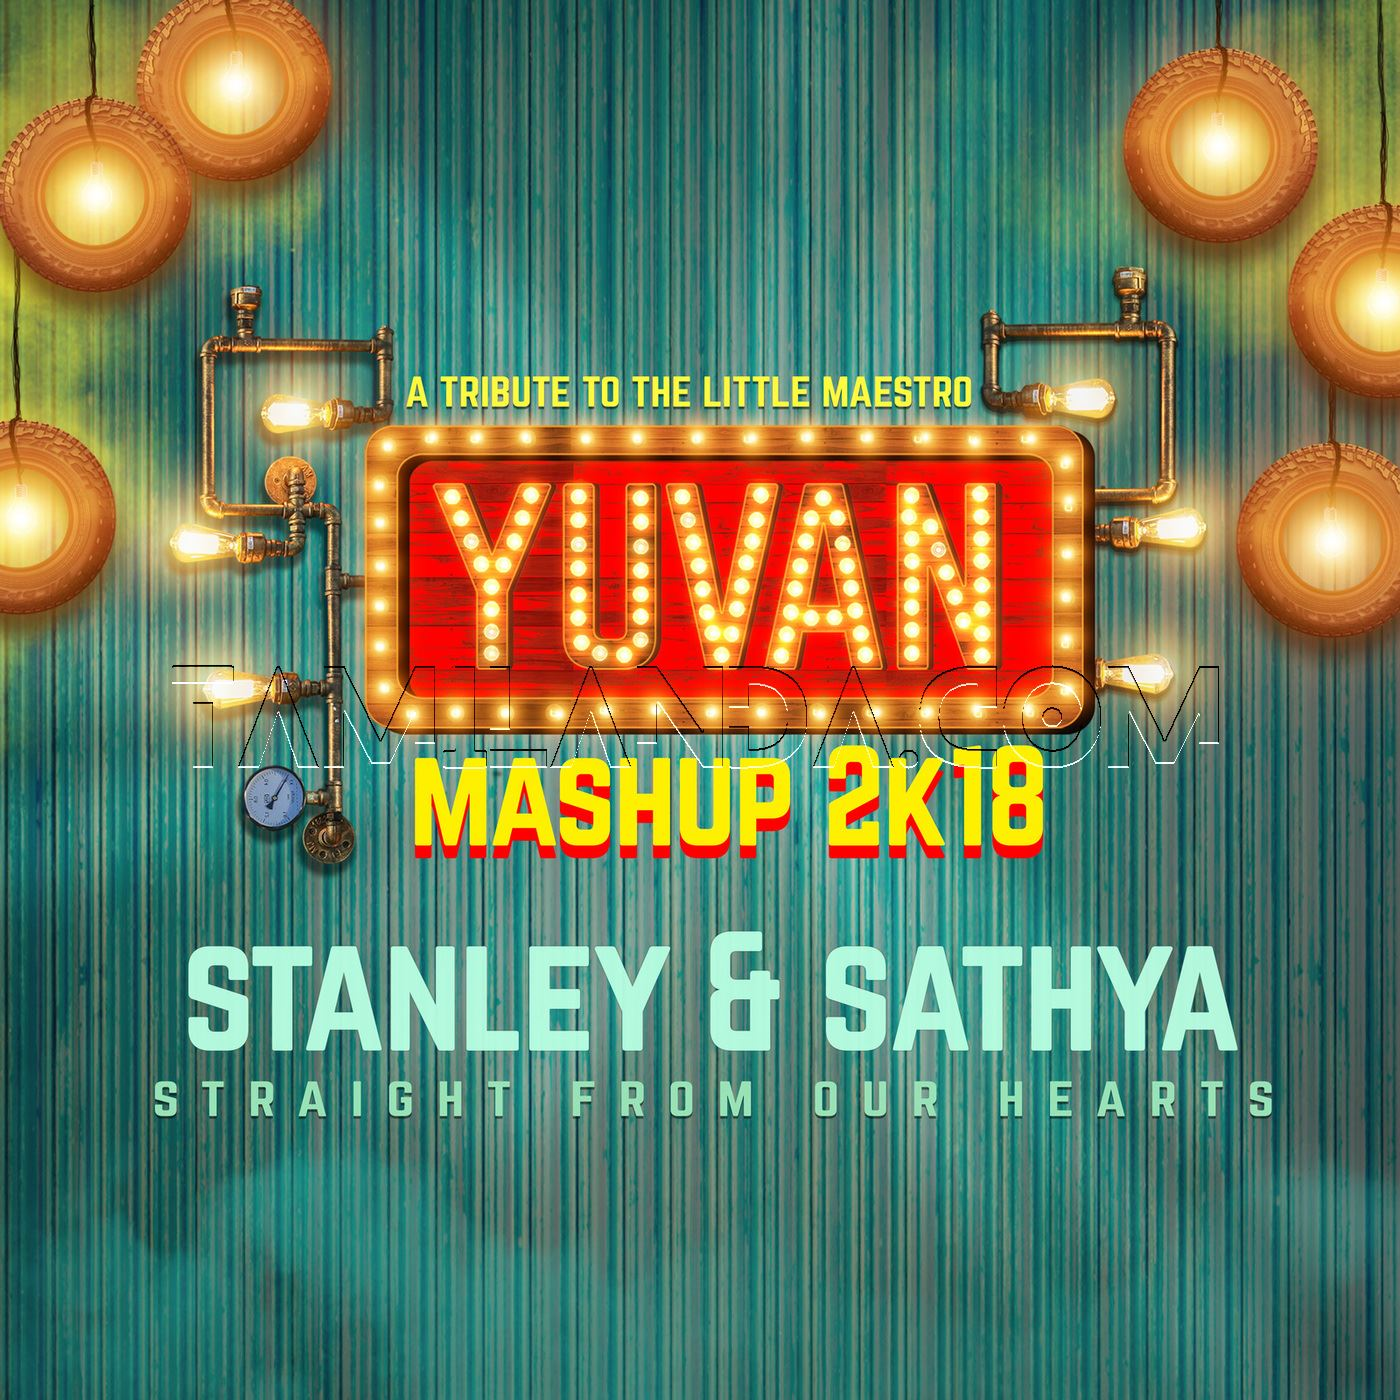 Yuvan Mashup 2k18 (Straight from Our Hearts) – Single FLAC/WAV Album Song